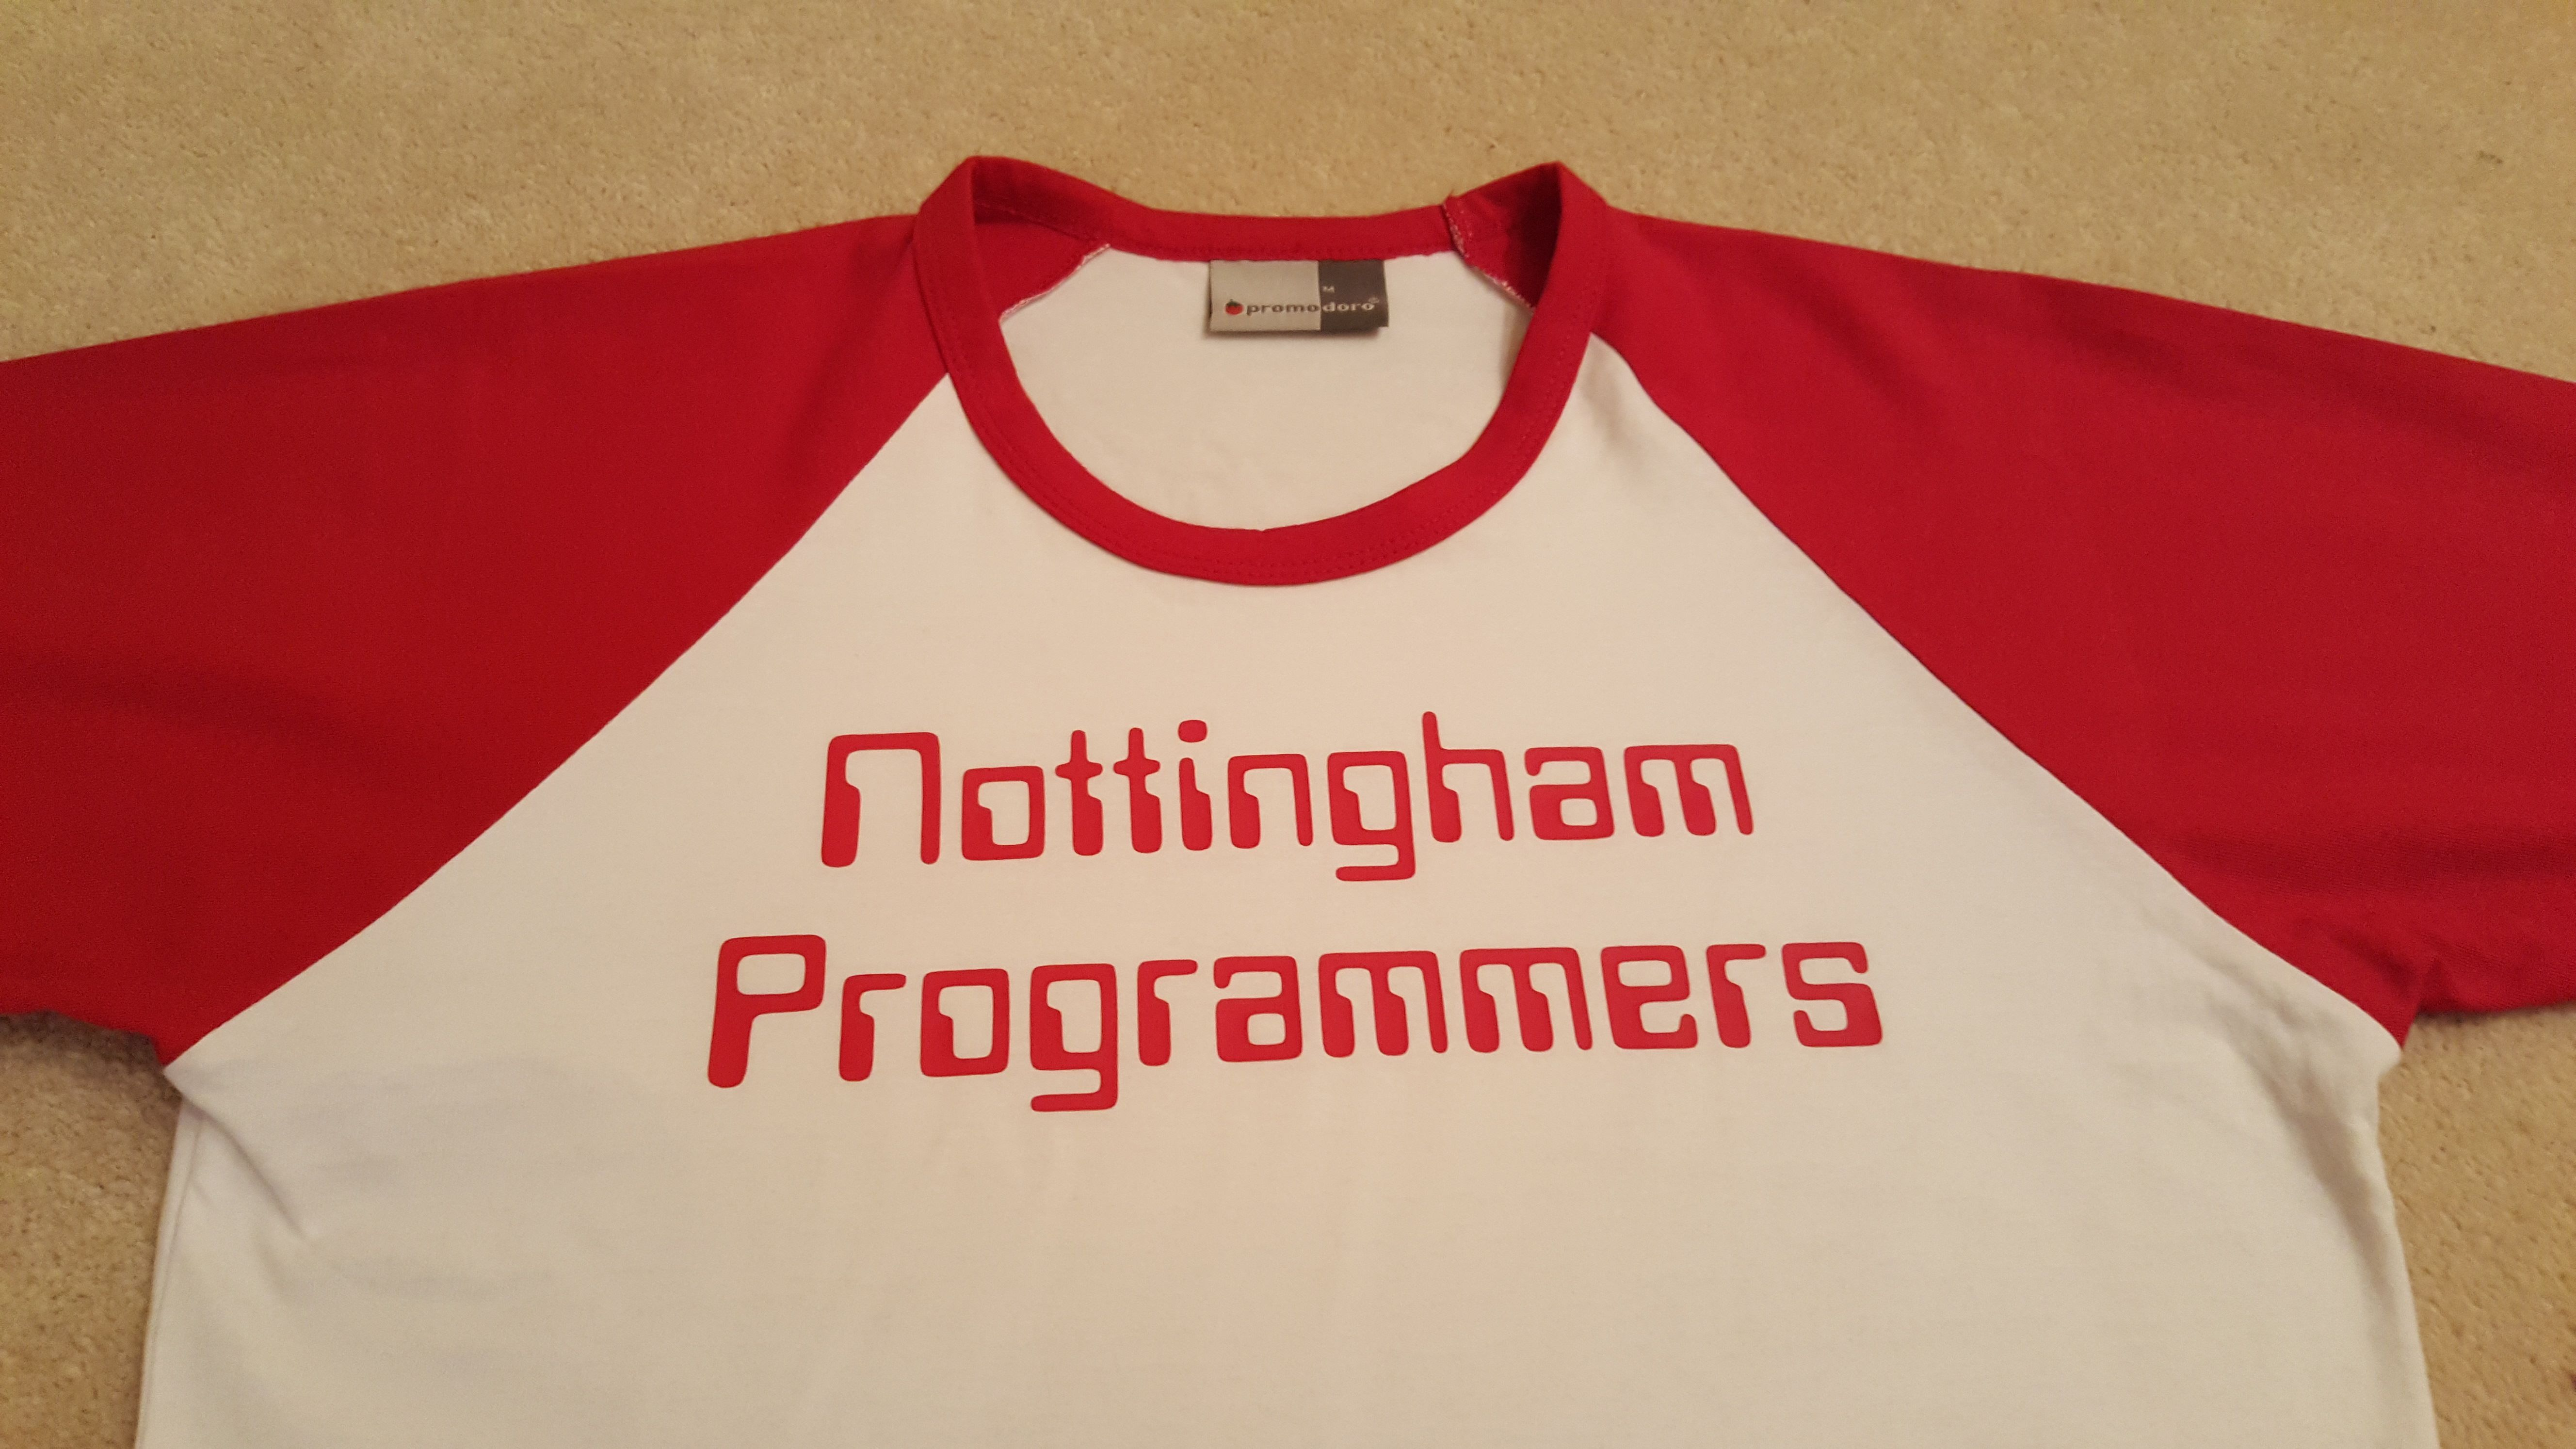 Nottingham Programmers Meetup Group